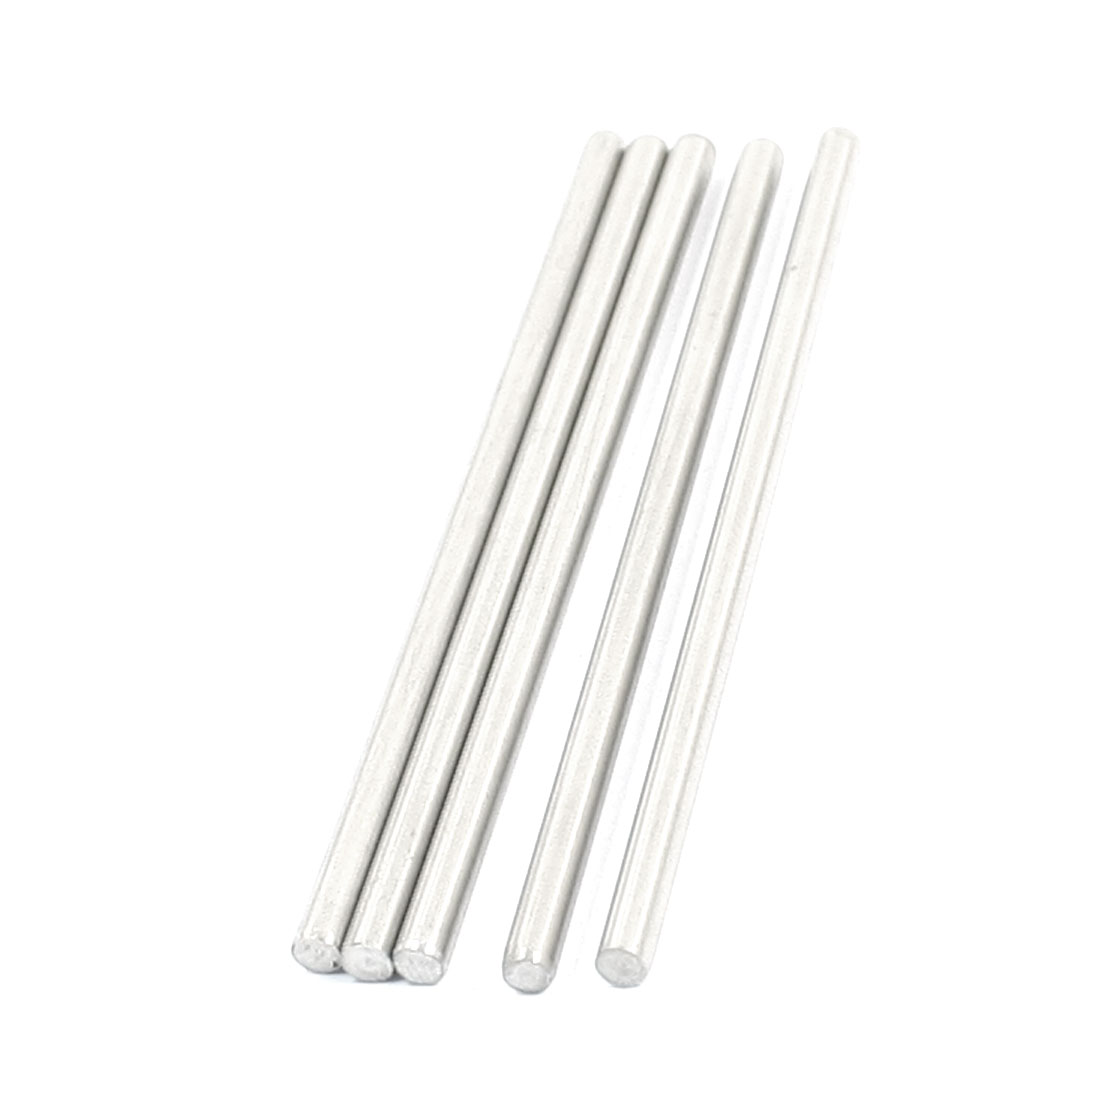 5Pcs RC Toy Car Model Part Stainless Steel Round Rods Axles 3mm x 70mm